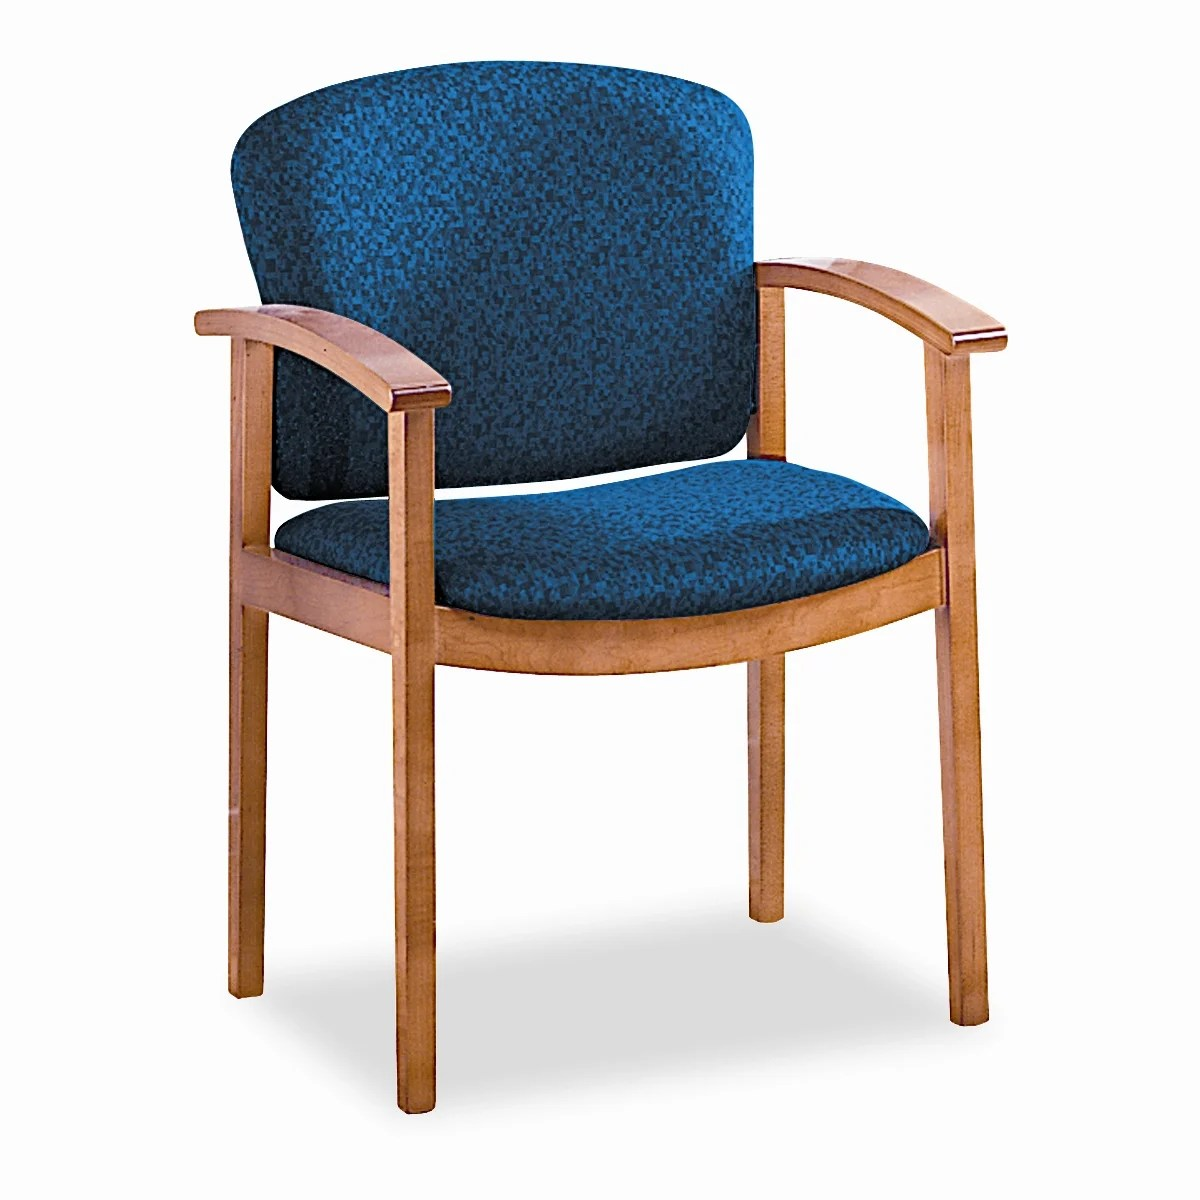 hon invitation guest chair hans wegner rocking series office wayfair supply